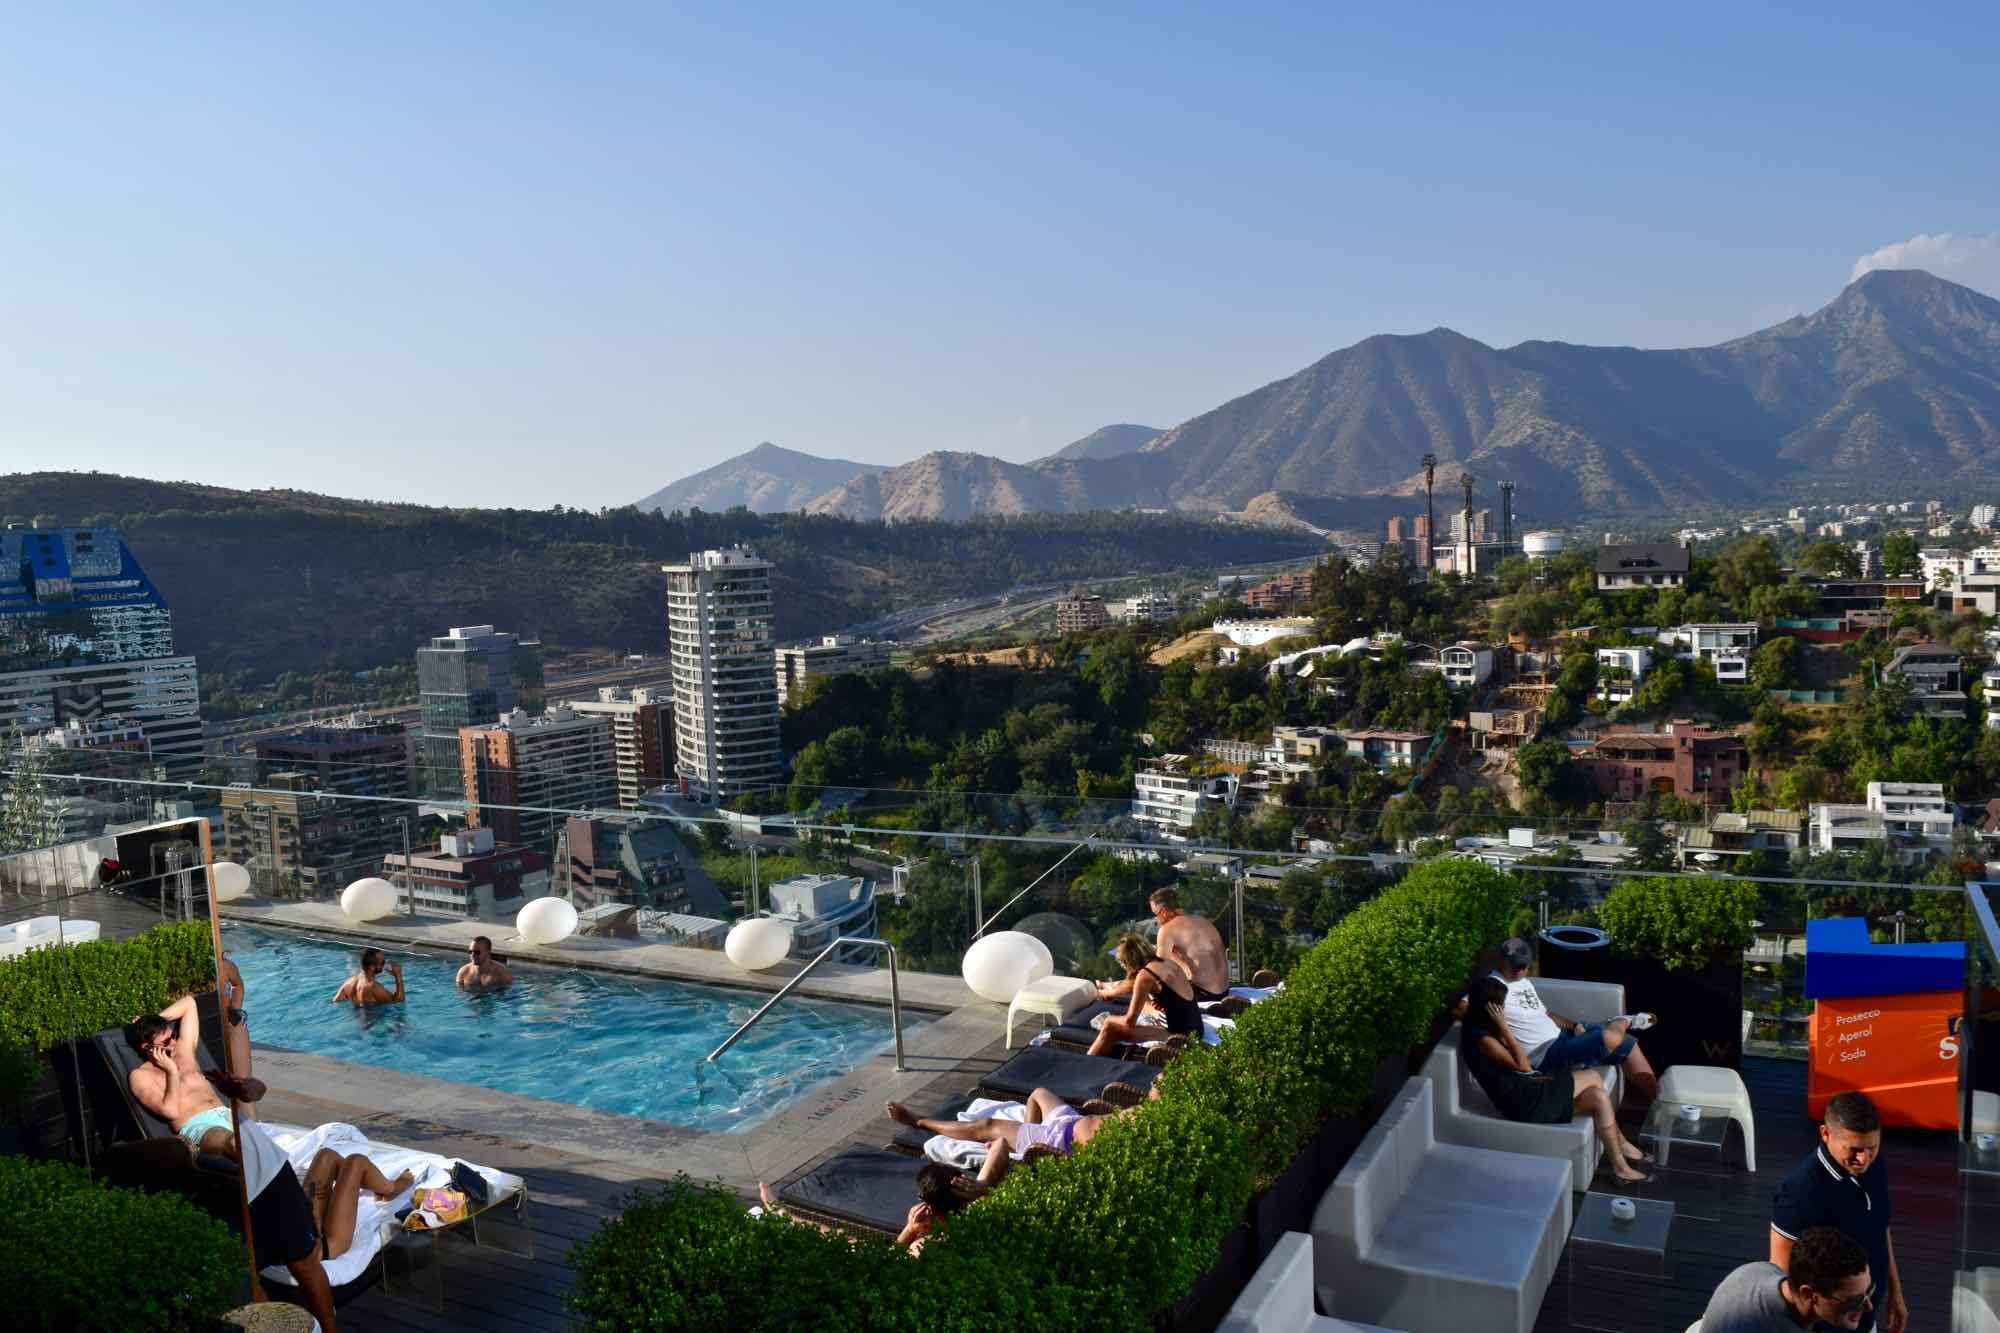 W Hotel Swimming Pool Santiago Chile